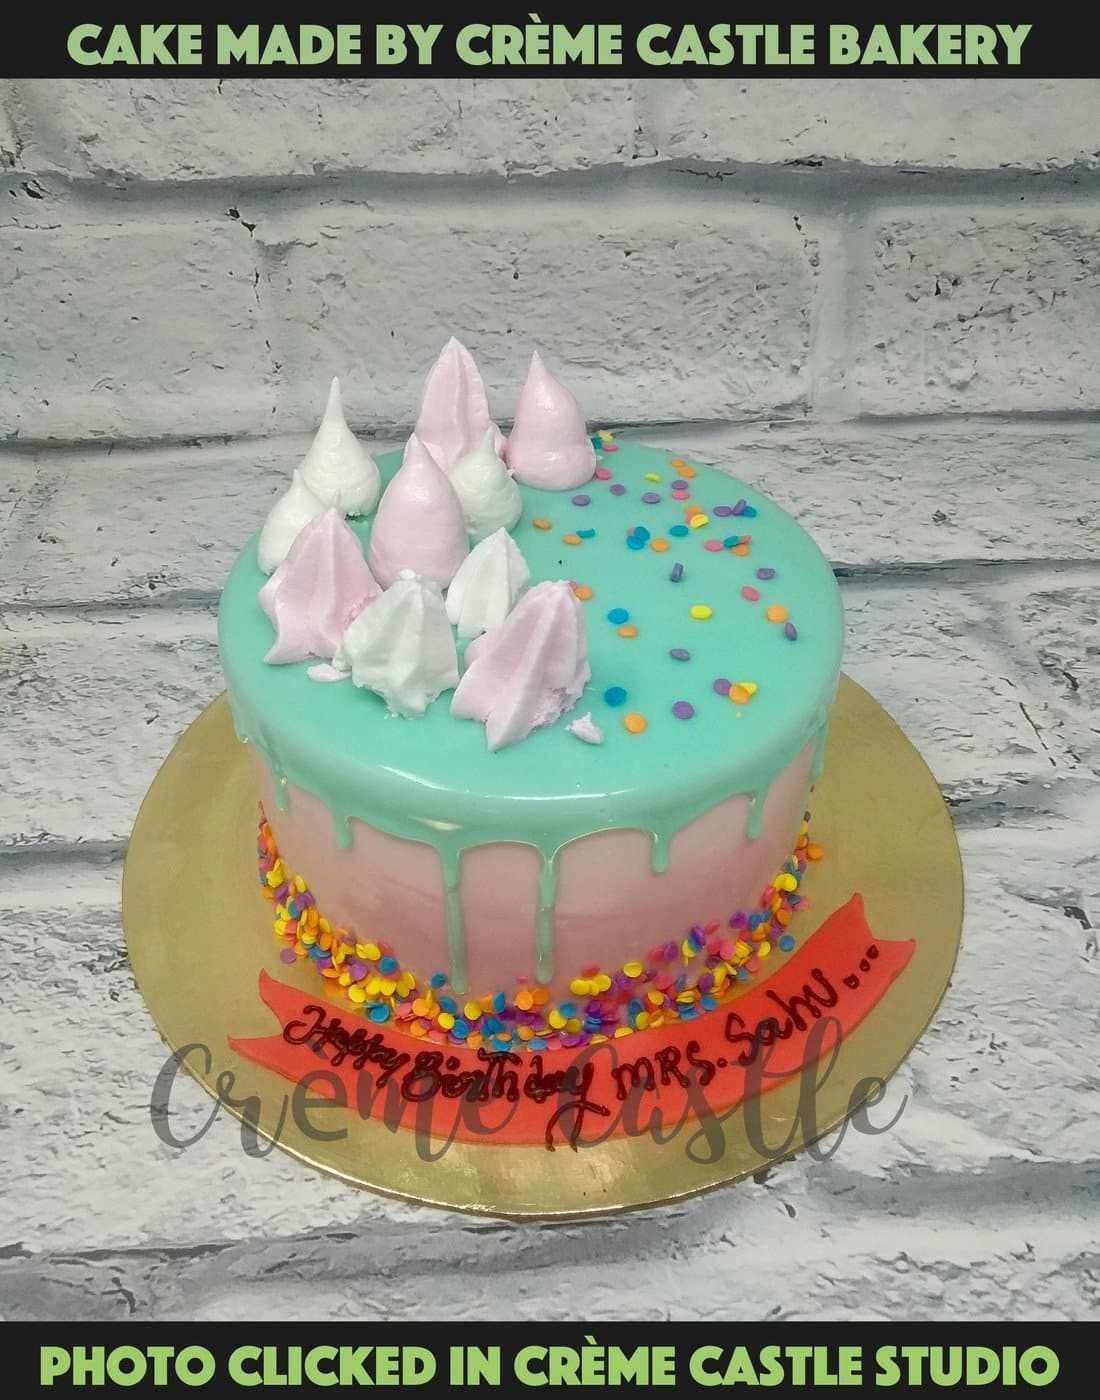 A blue drip cake on pink base with pink meringues